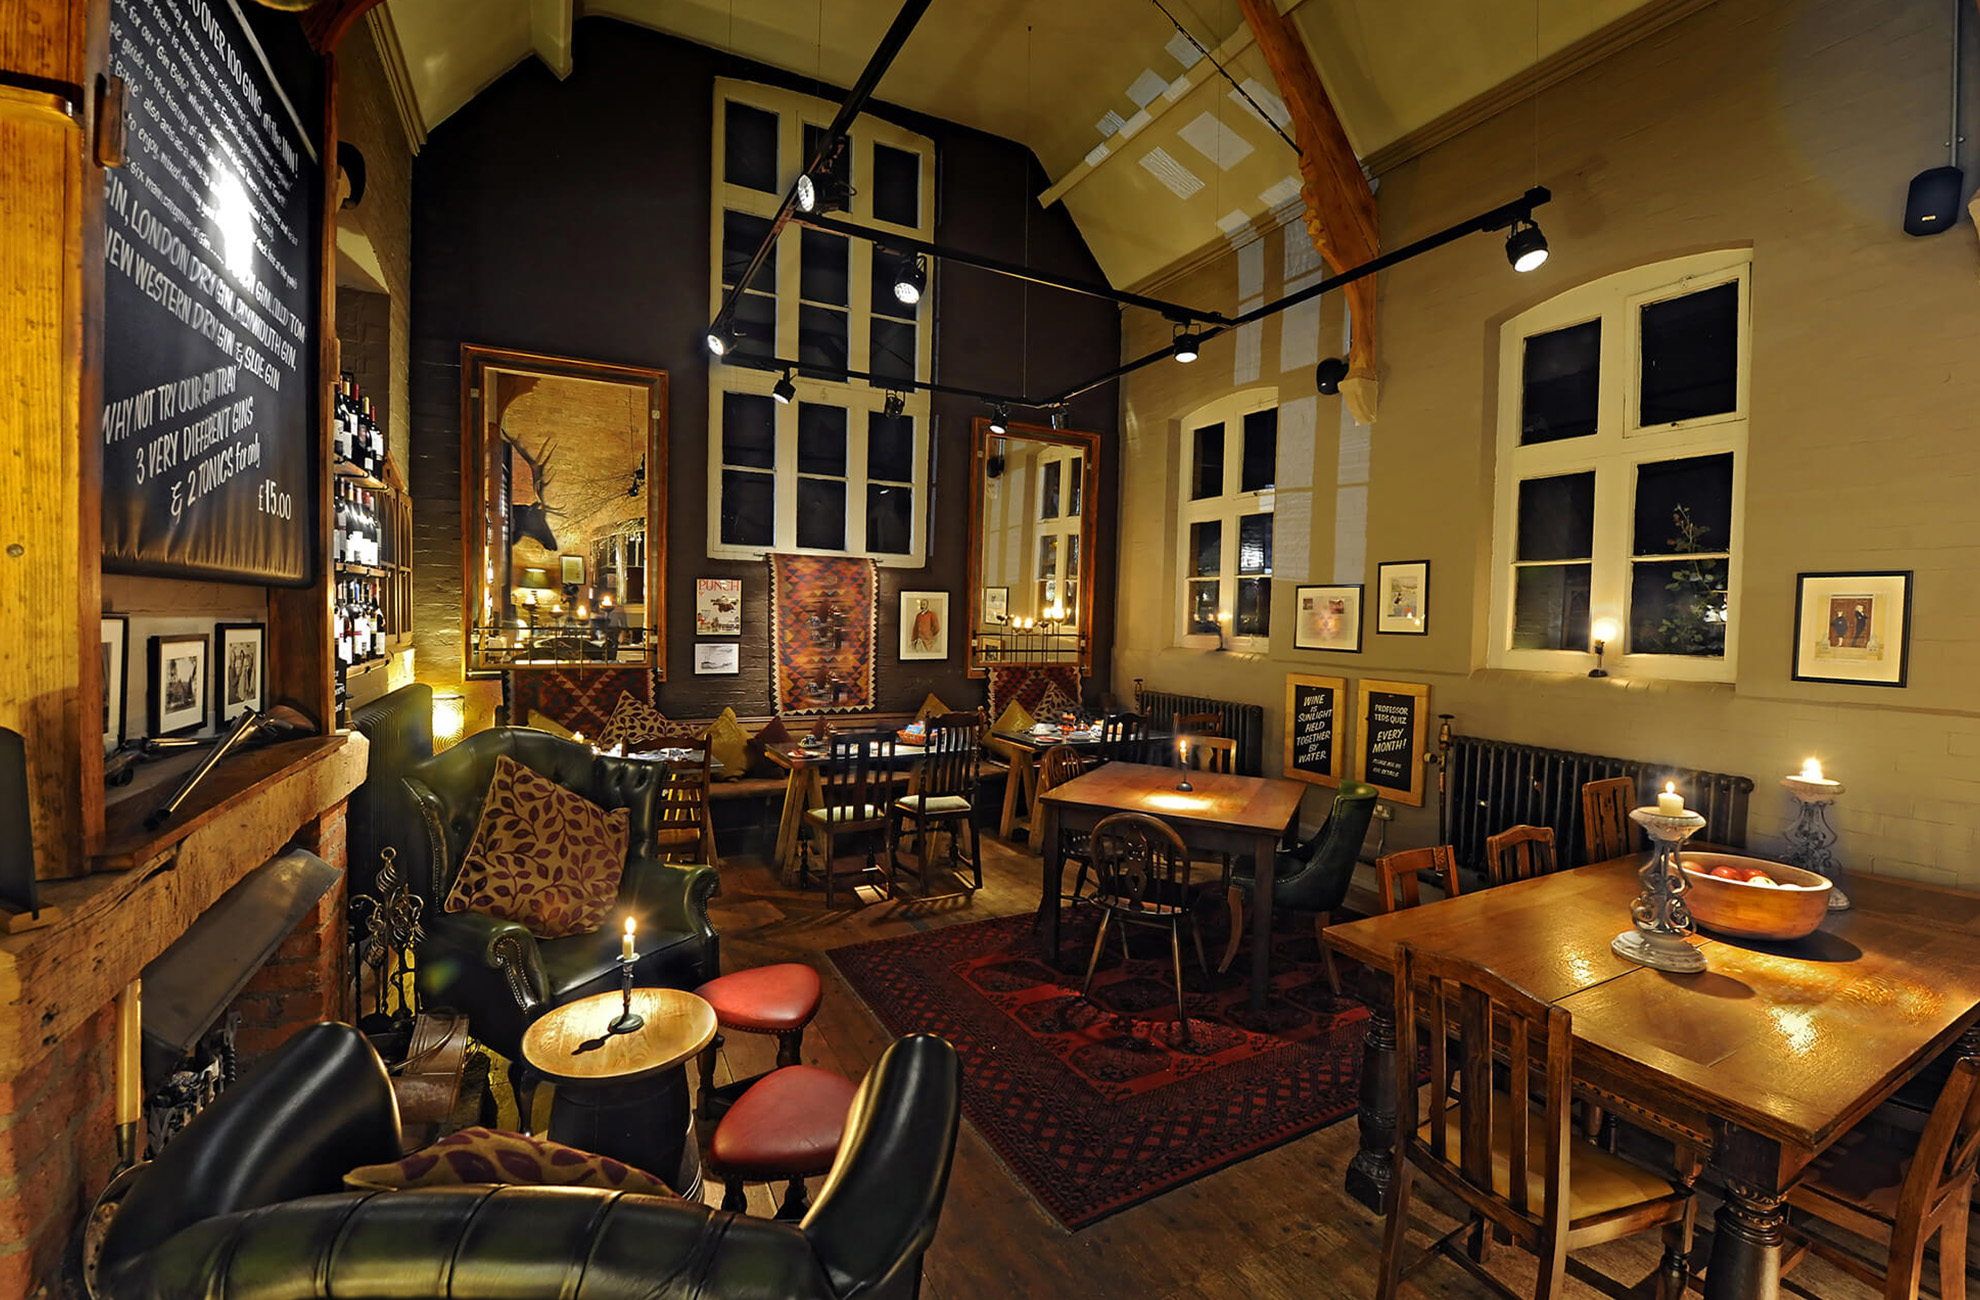 The Cholmondeley Arms pub Is a pub close to Combermere Abbey